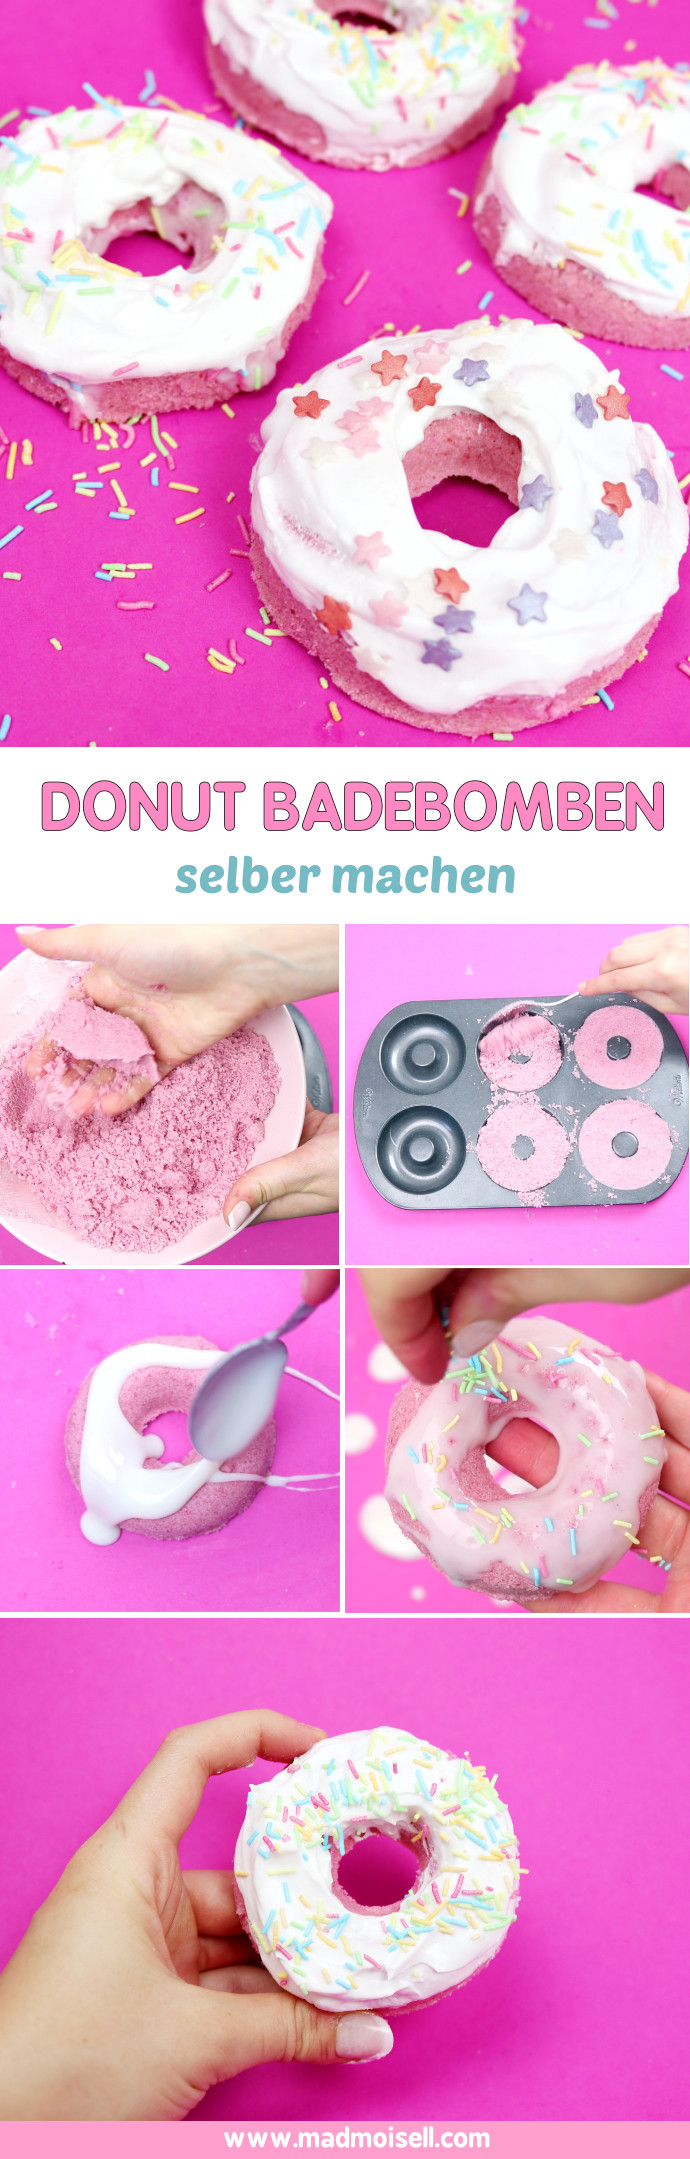 diy donut badebomben selber machen schnelles diy geschenk. Black Bedroom Furniture Sets. Home Design Ideas